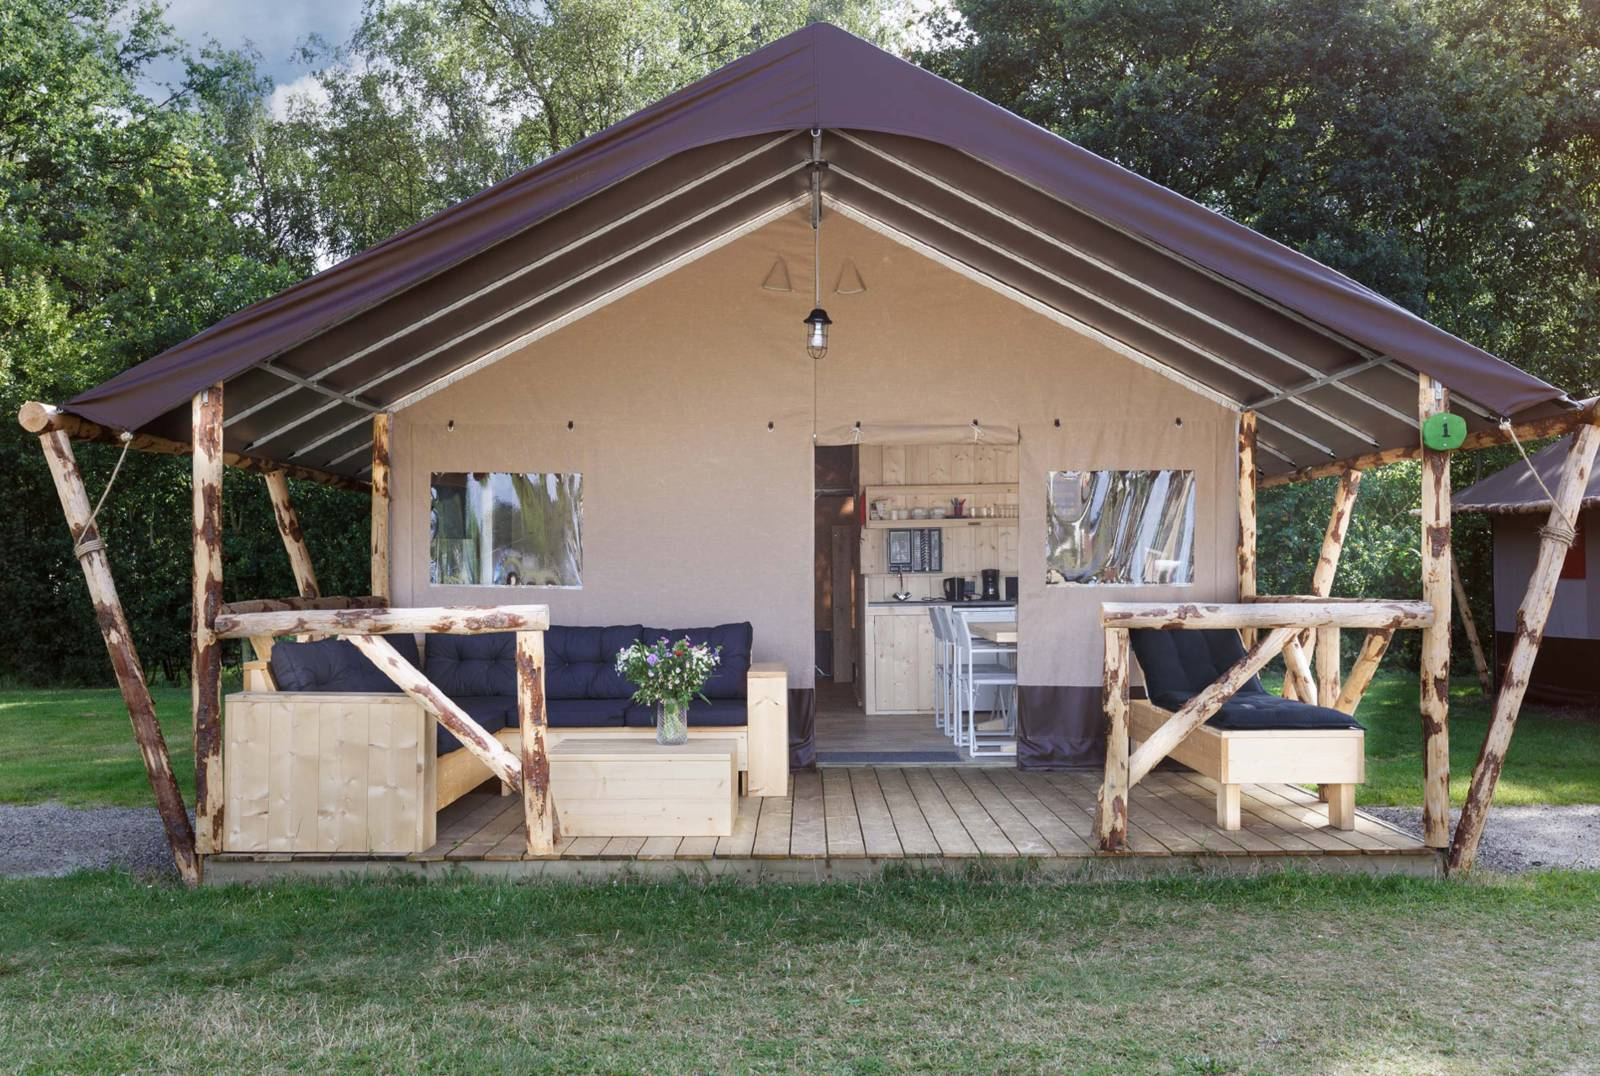 luxe lodgetent pauw 6 persoons glamping verblijf. Black Bedroom Furniture Sets. Home Design Ideas